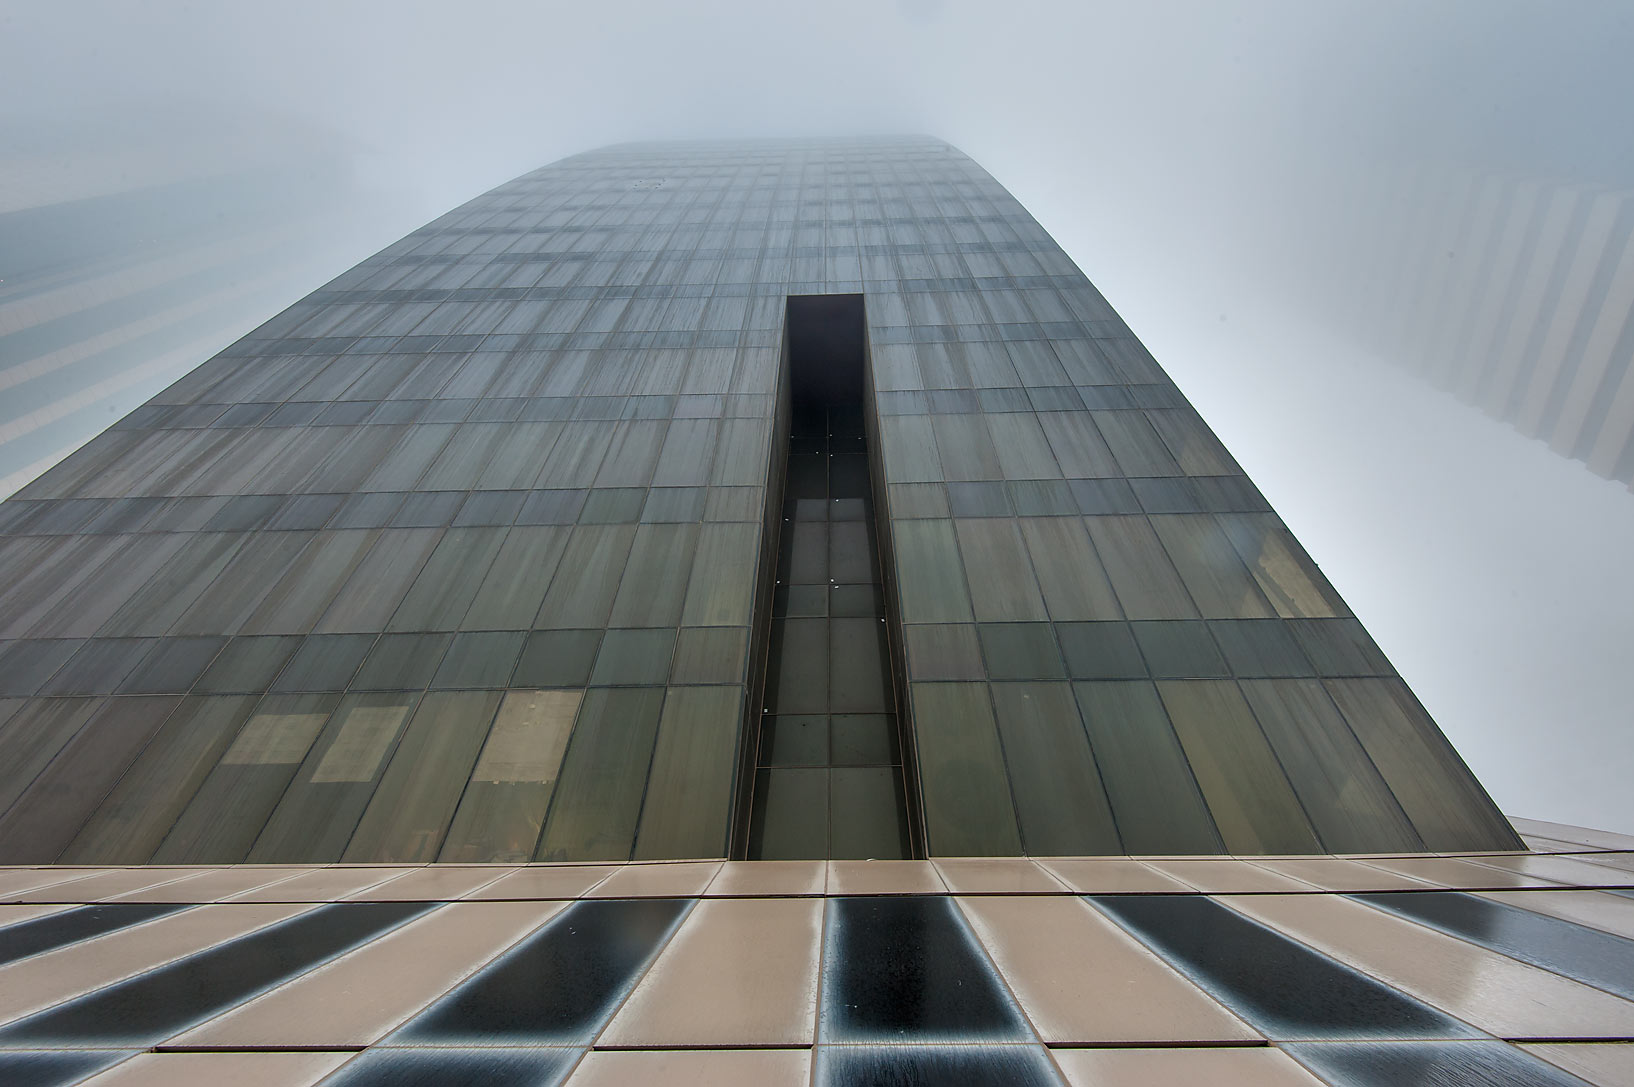 Belly of Abdulghani Commercial Tower in West Bay in fog. Doha, Qatar